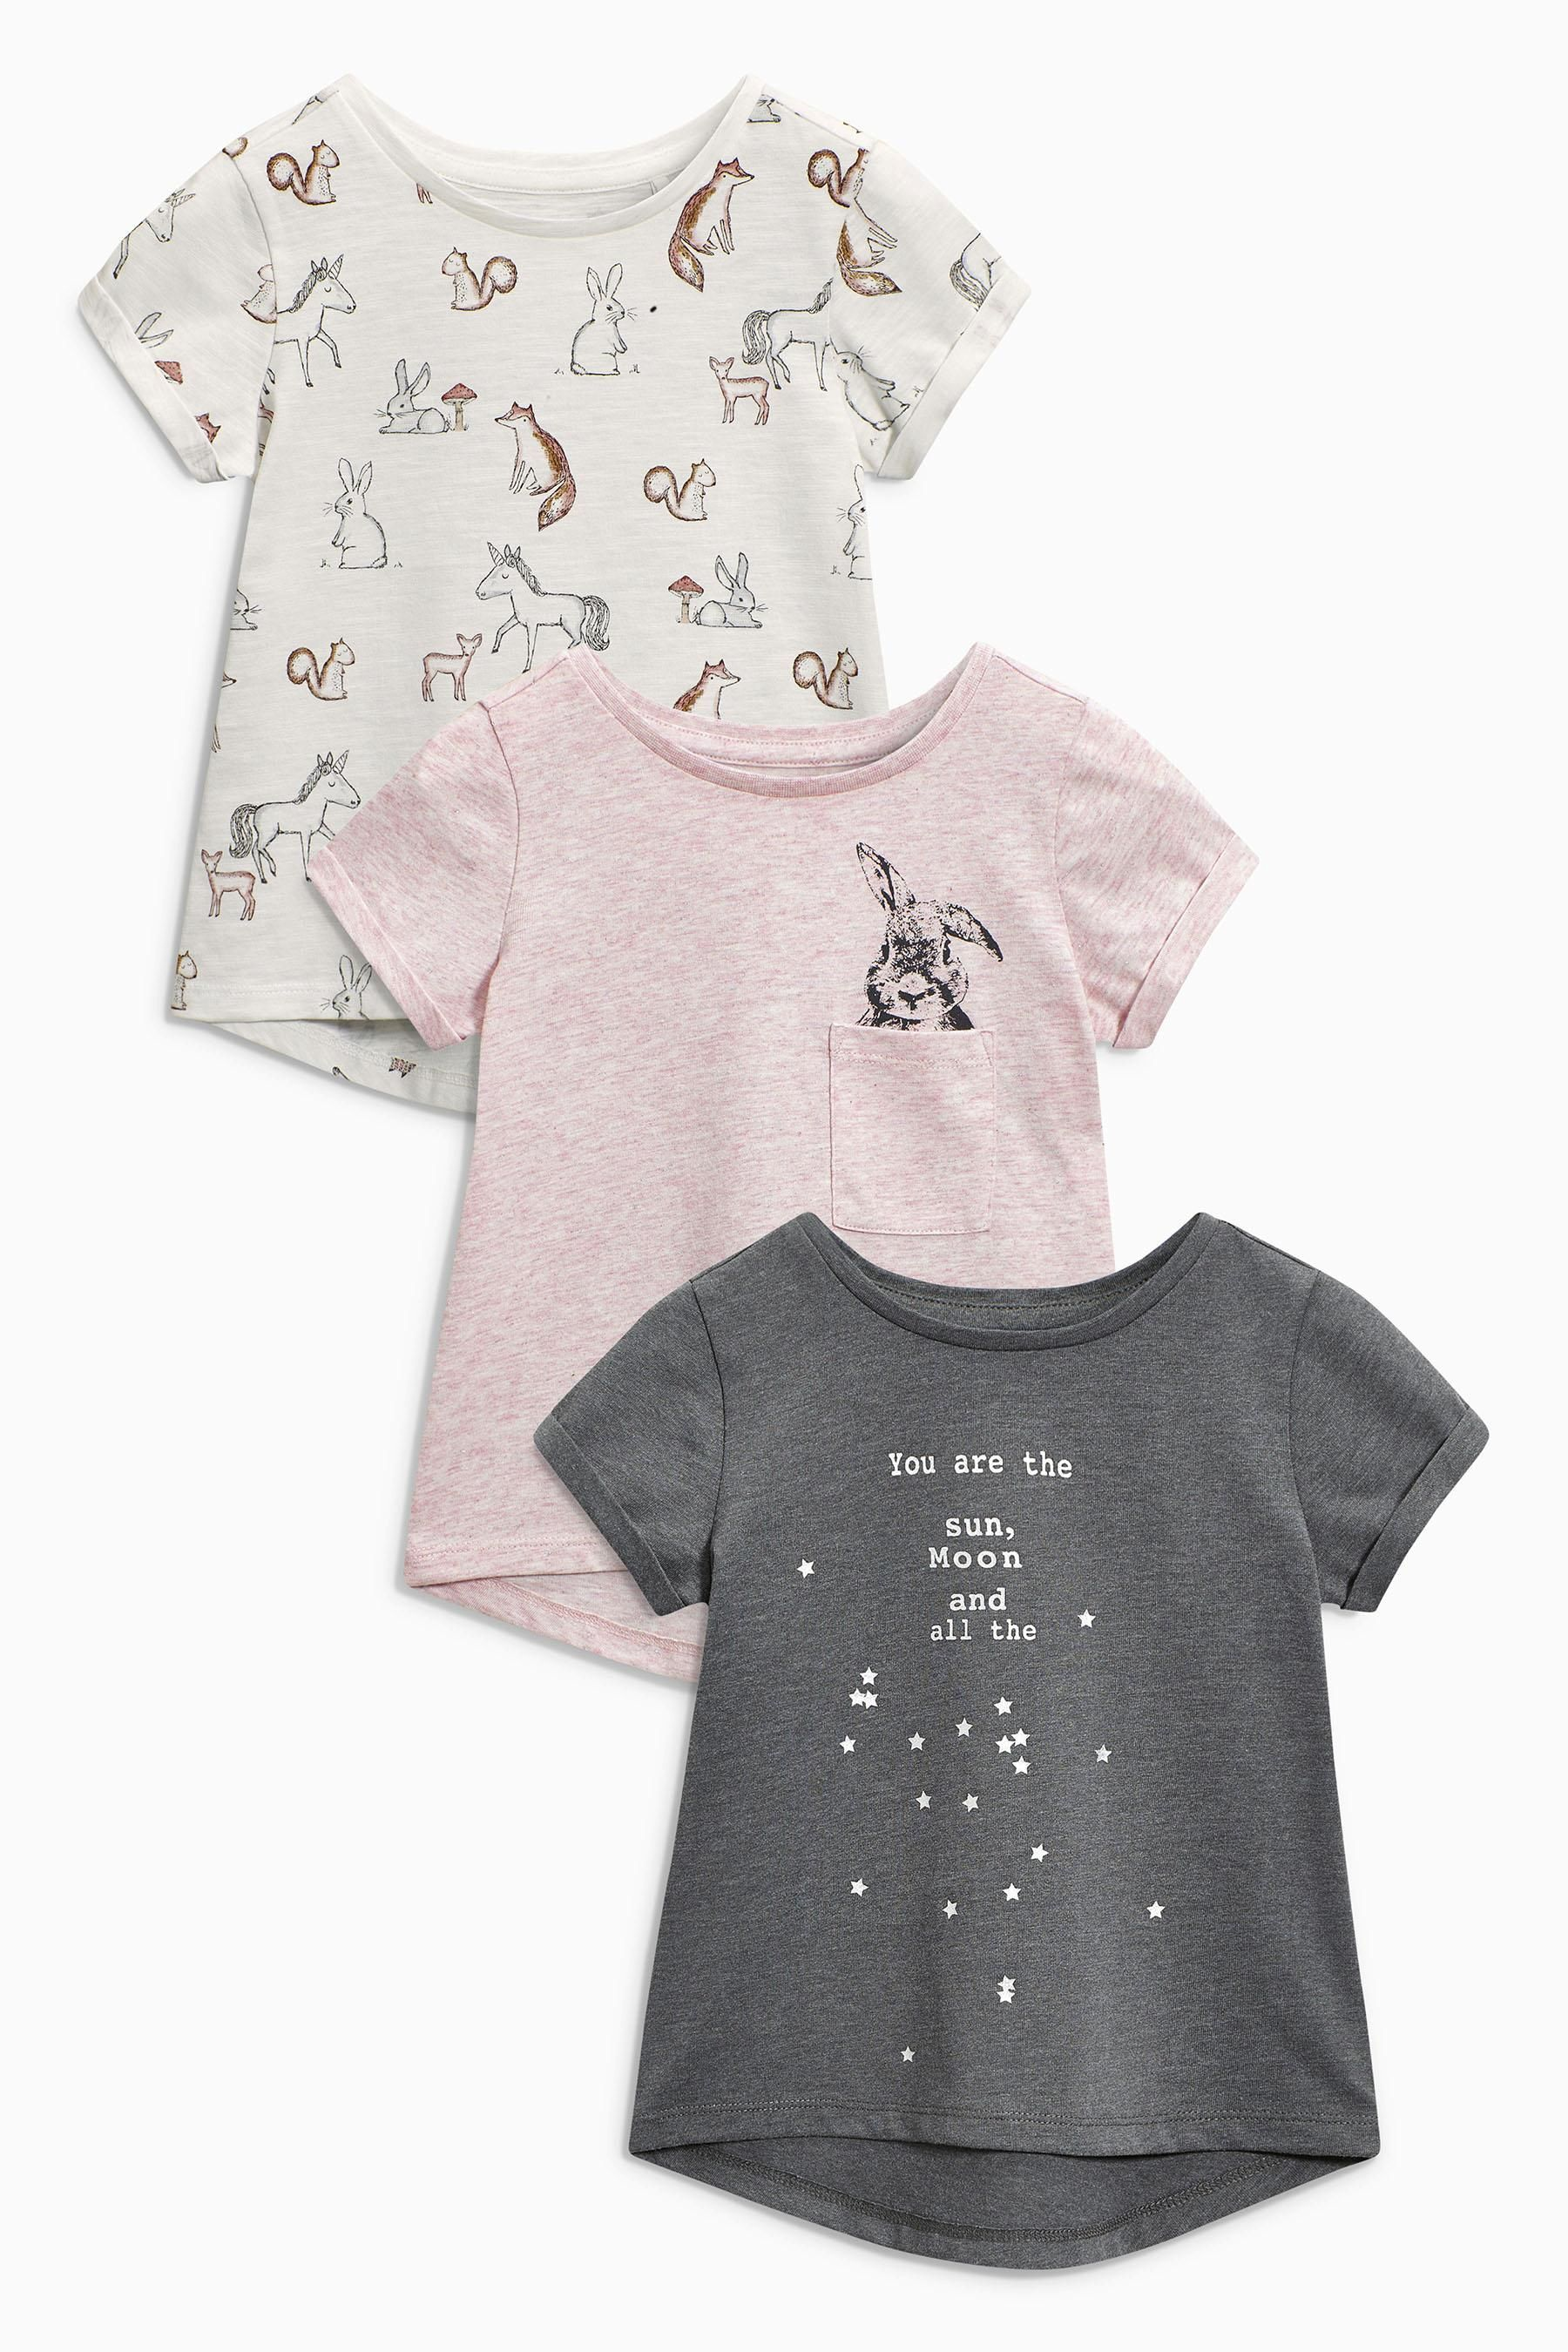 Shirt design online uk - Buy Pink Grey Bunny T Shirts Three Pack Online Today At Next United States Of America